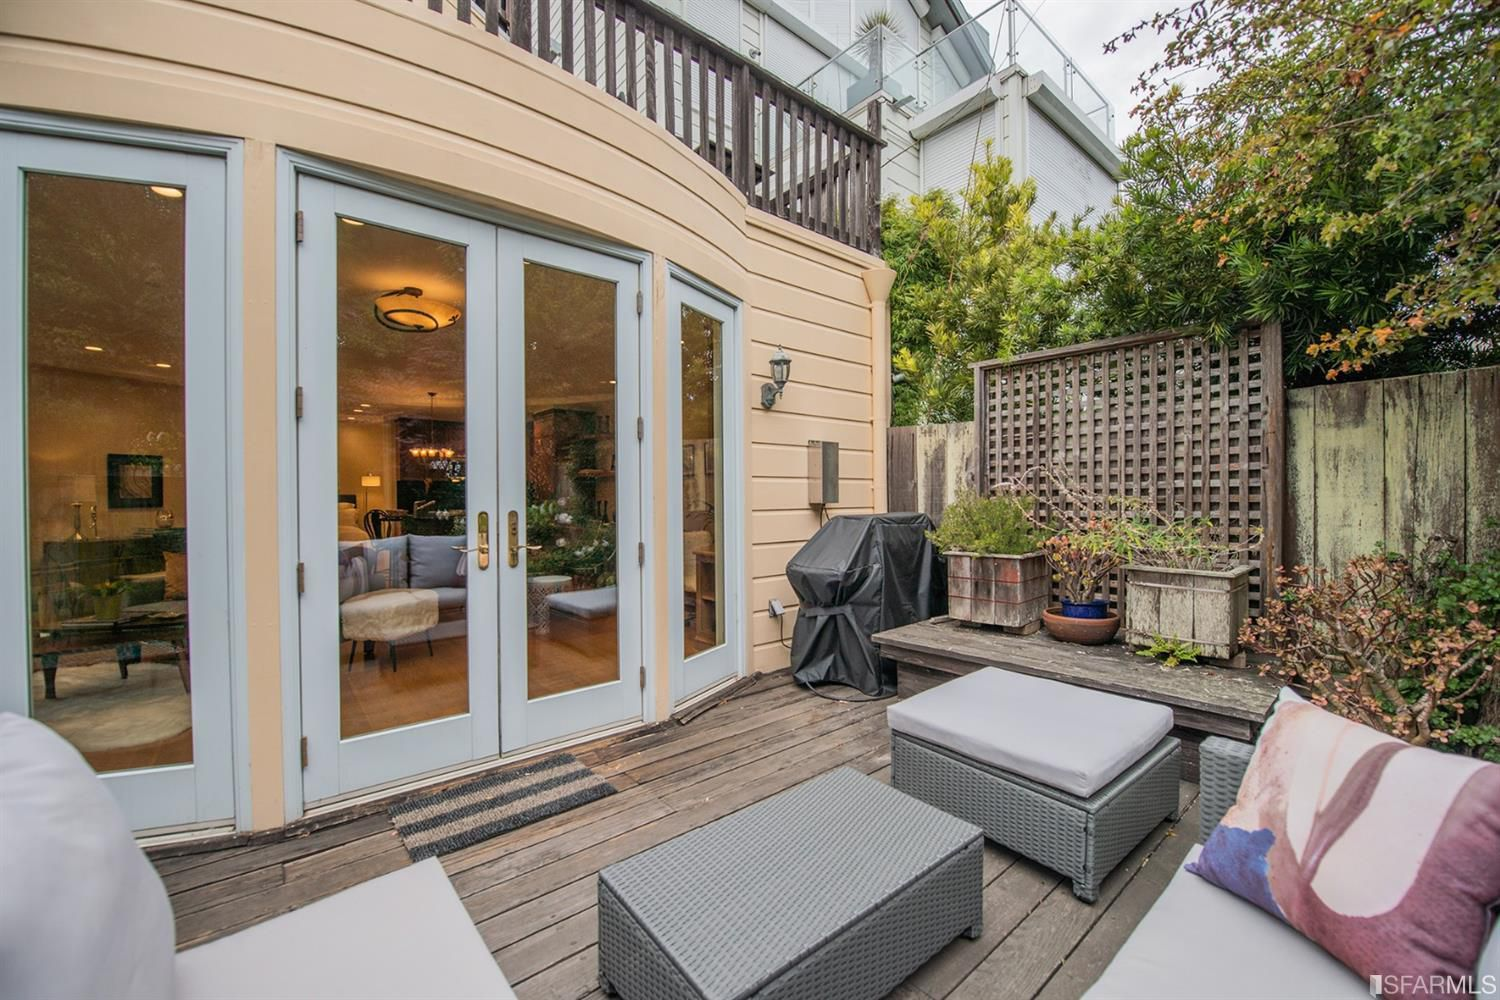 2153 North Point - 1 bed | 1.5 bath | Great outdoor space | $899,000